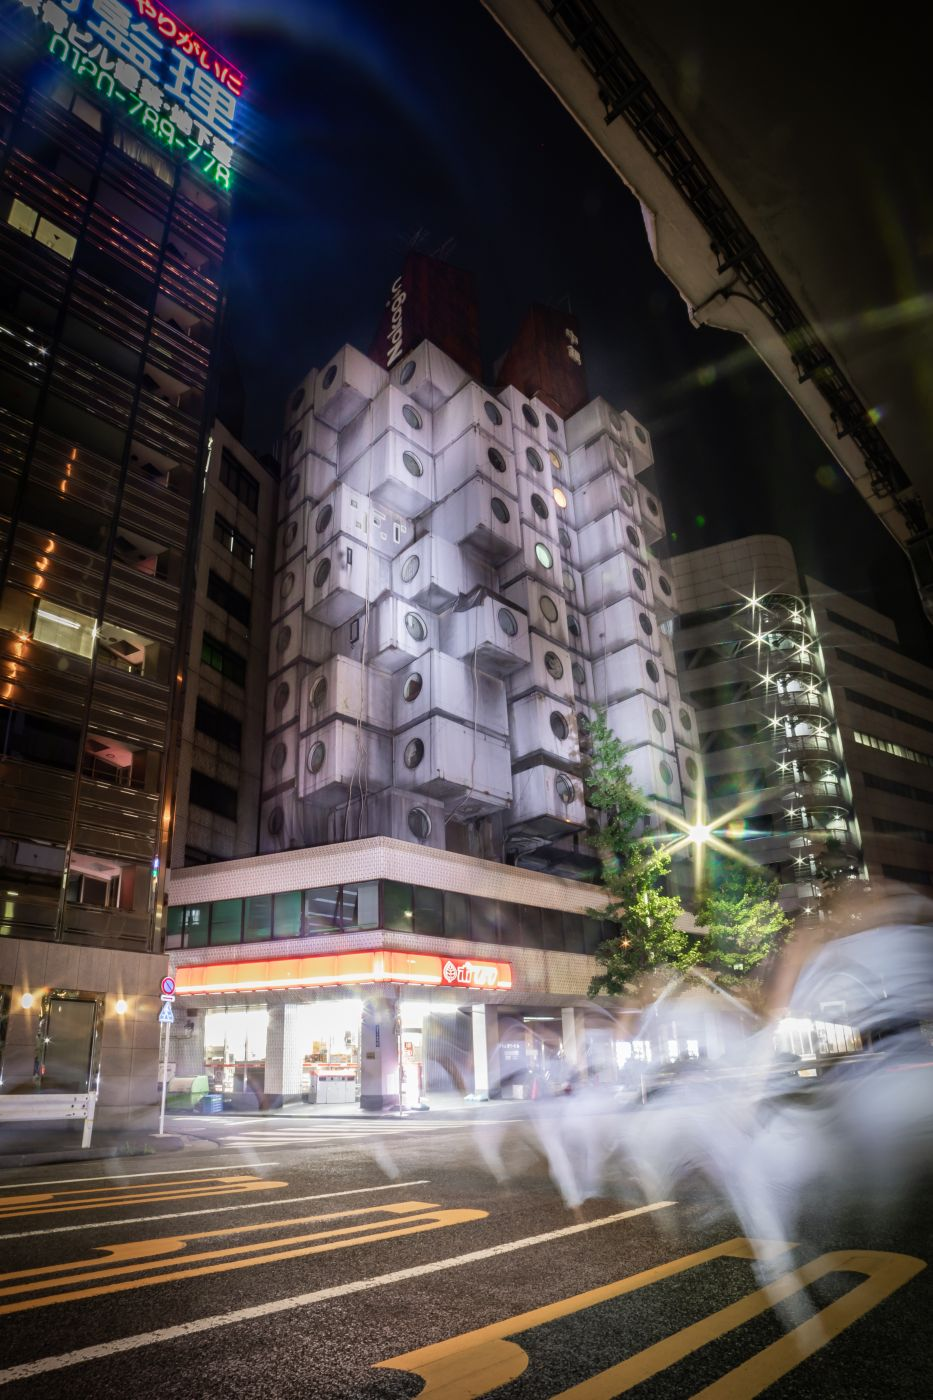 Nakagin Capsule Tower, Japan